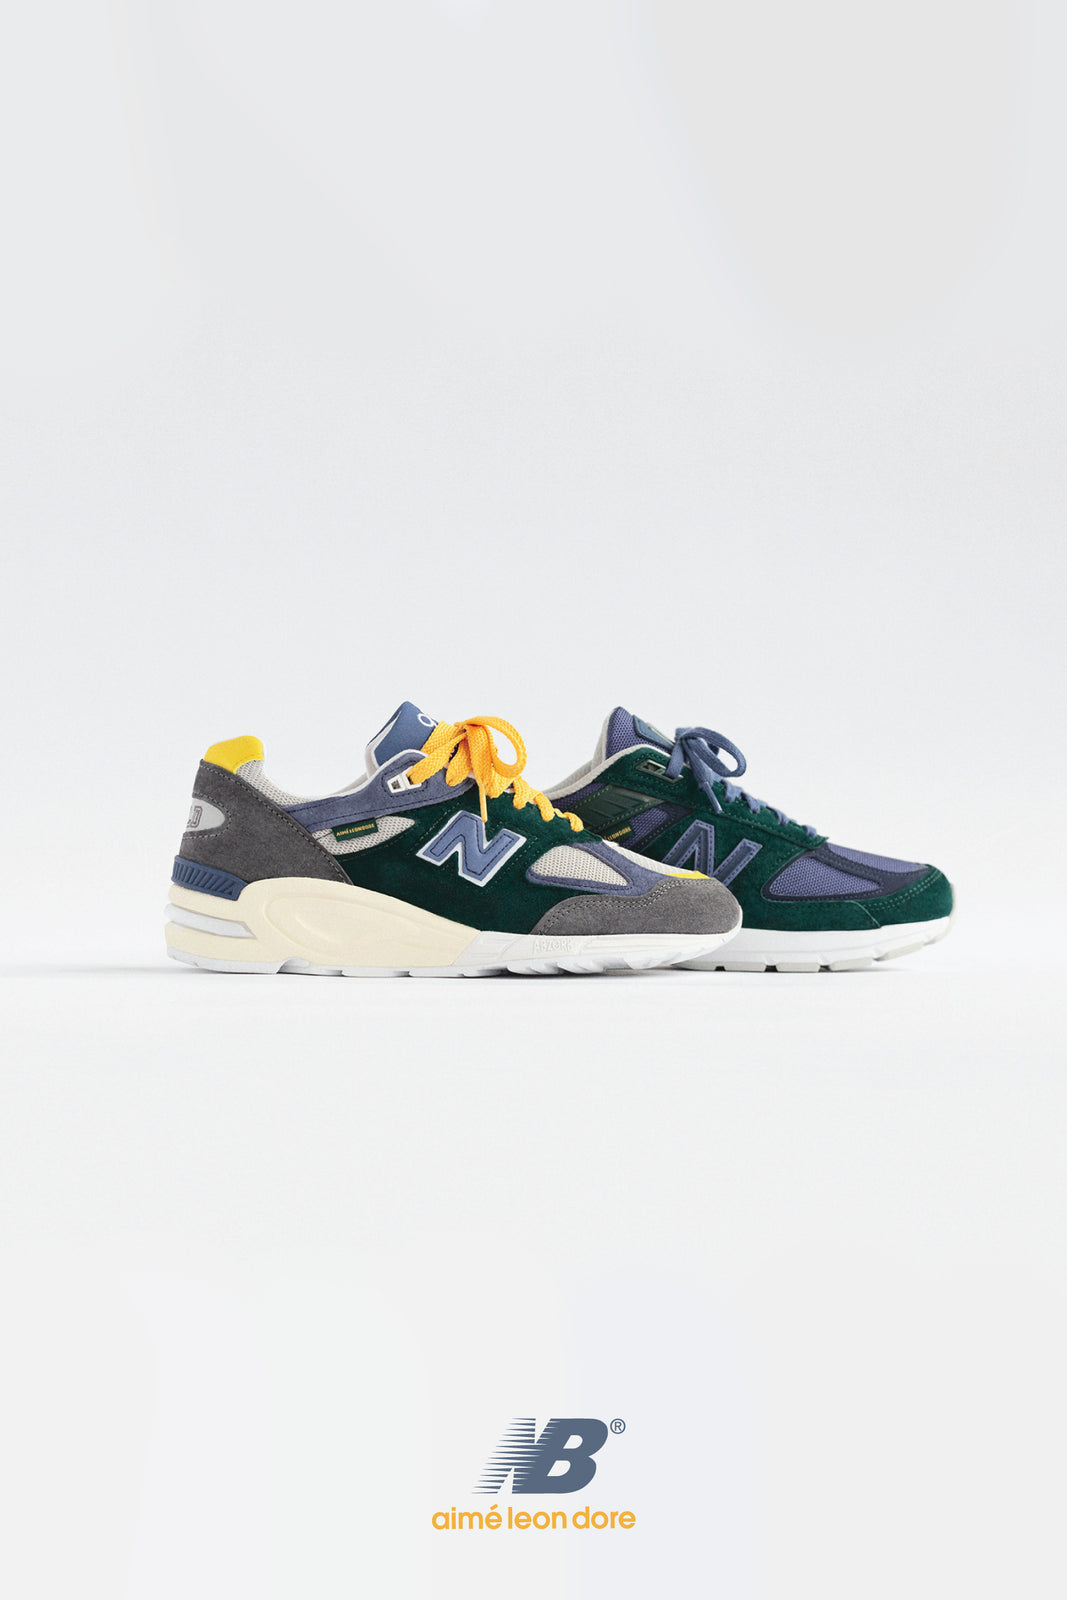 Aimé Leon Dore / New Balance 990 Capsule Collection